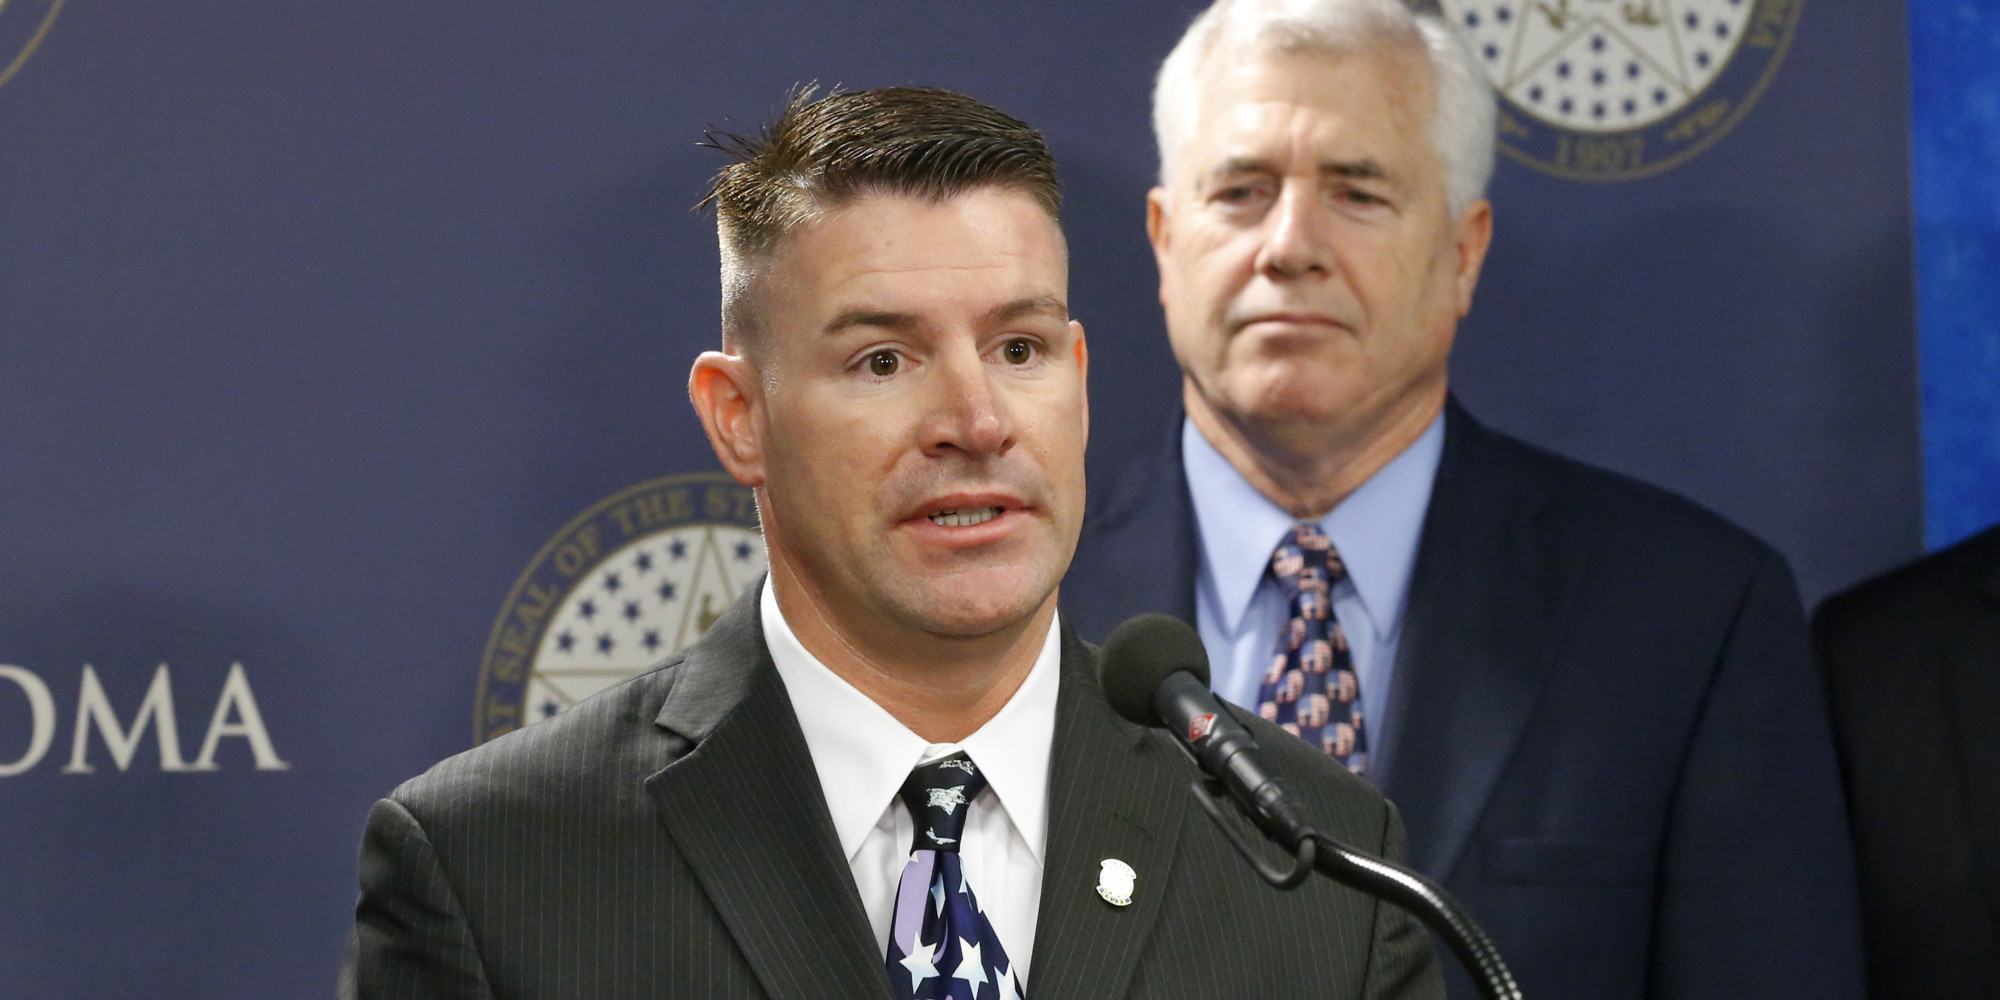 """bennett muslim A muslim group wants state rep john bennett to shut up when it comes to talking about islamic terrorism and the threat to oklahoma bennett, a veteran who fought muslim terrorists in the middle east, held an interim study last week on """"radical islam, shariah law, the muslim brotherhood and the radicalization process"""" before the house judiciary and civil procedure committee."""